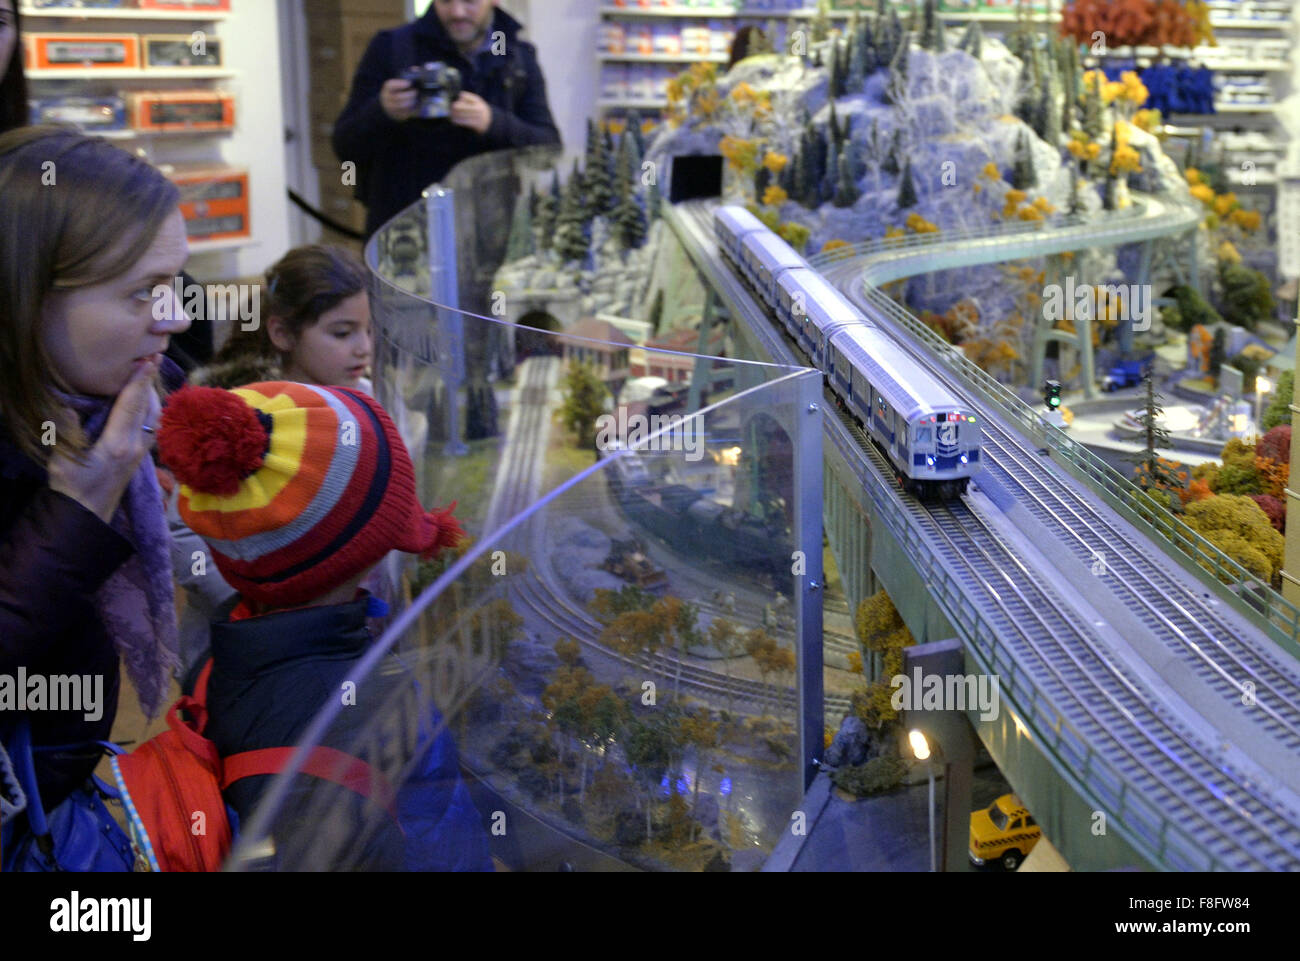 New York, USA. 9th Dec, 2015. Visitors watch a model railroad presented during the Holiday Train Show at Grand Central - Stock Image